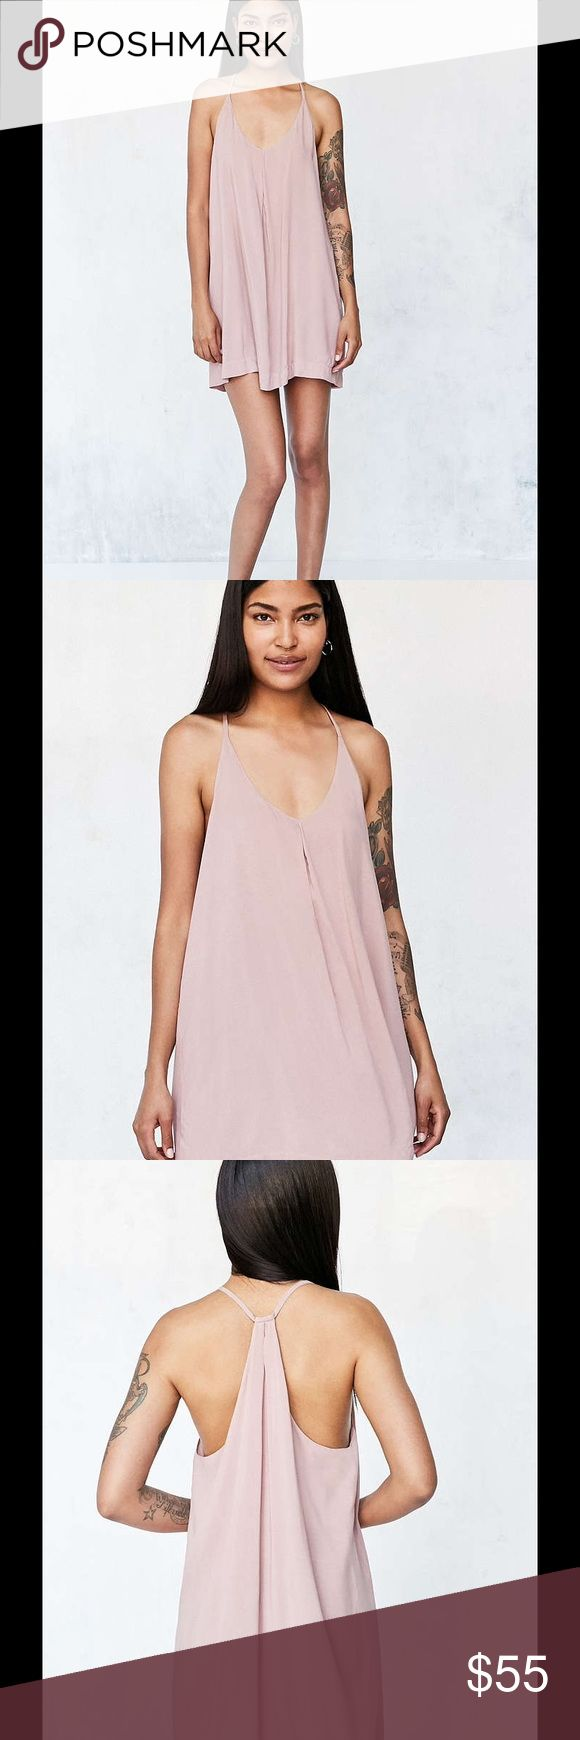 """Urban Outfitters Slip Dress NOT FOR SALE!! Do not buy this listing.  Download the Dote Shopping app and get this dress for $55 plus free shipping using the promo code """"PDIN."""" Urban Outfitters Dresses"""